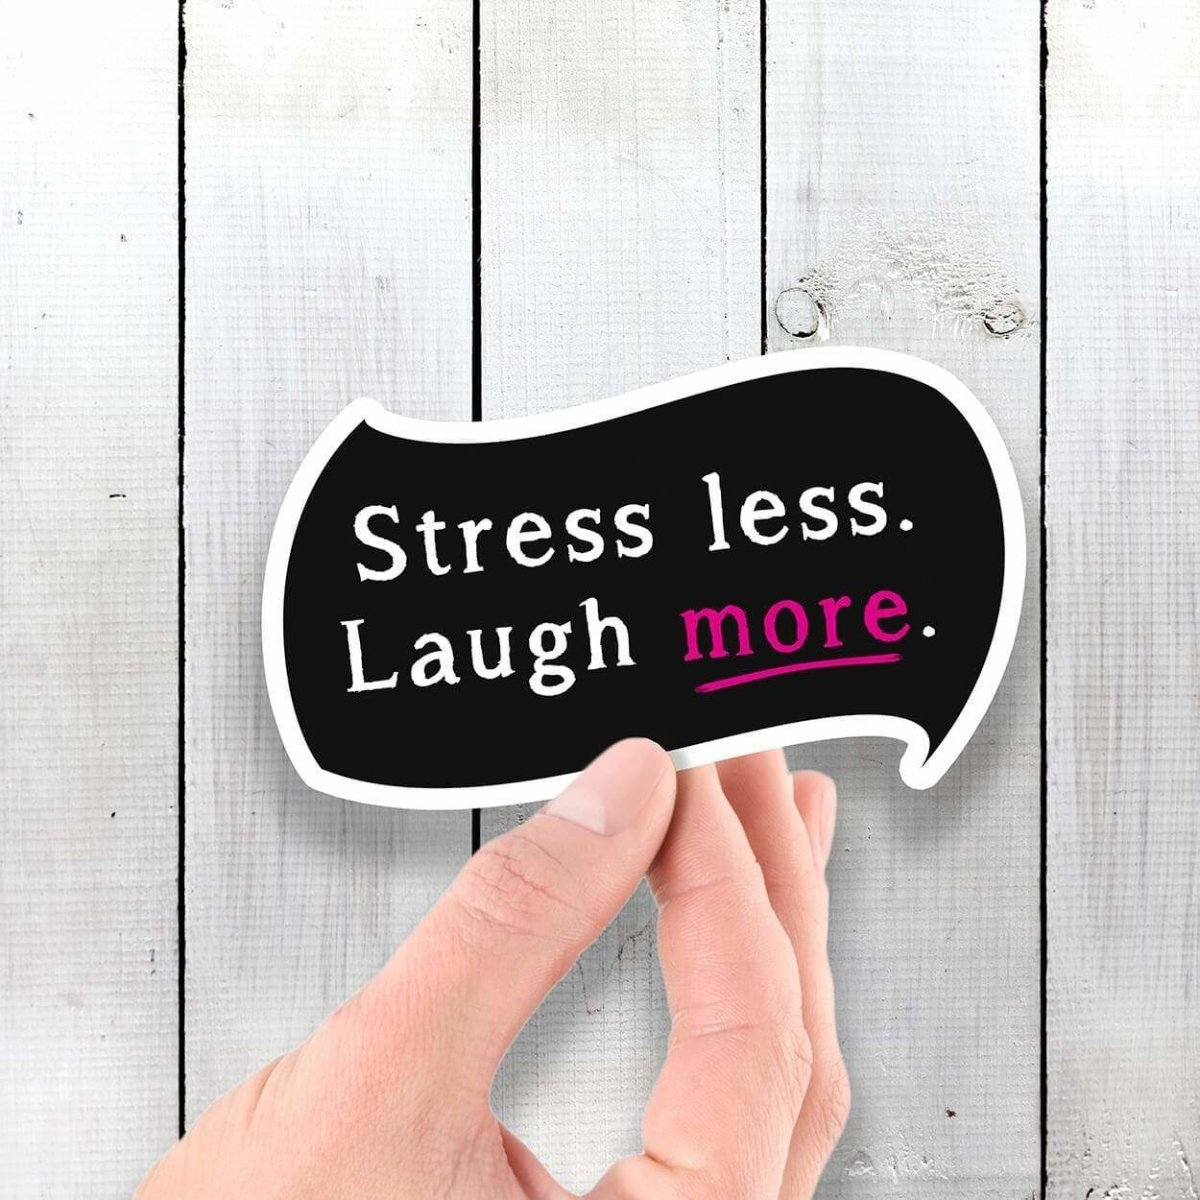 Stress Less, Laugh More - Vinyl Sticker - Dan Pearce Sticker Shop